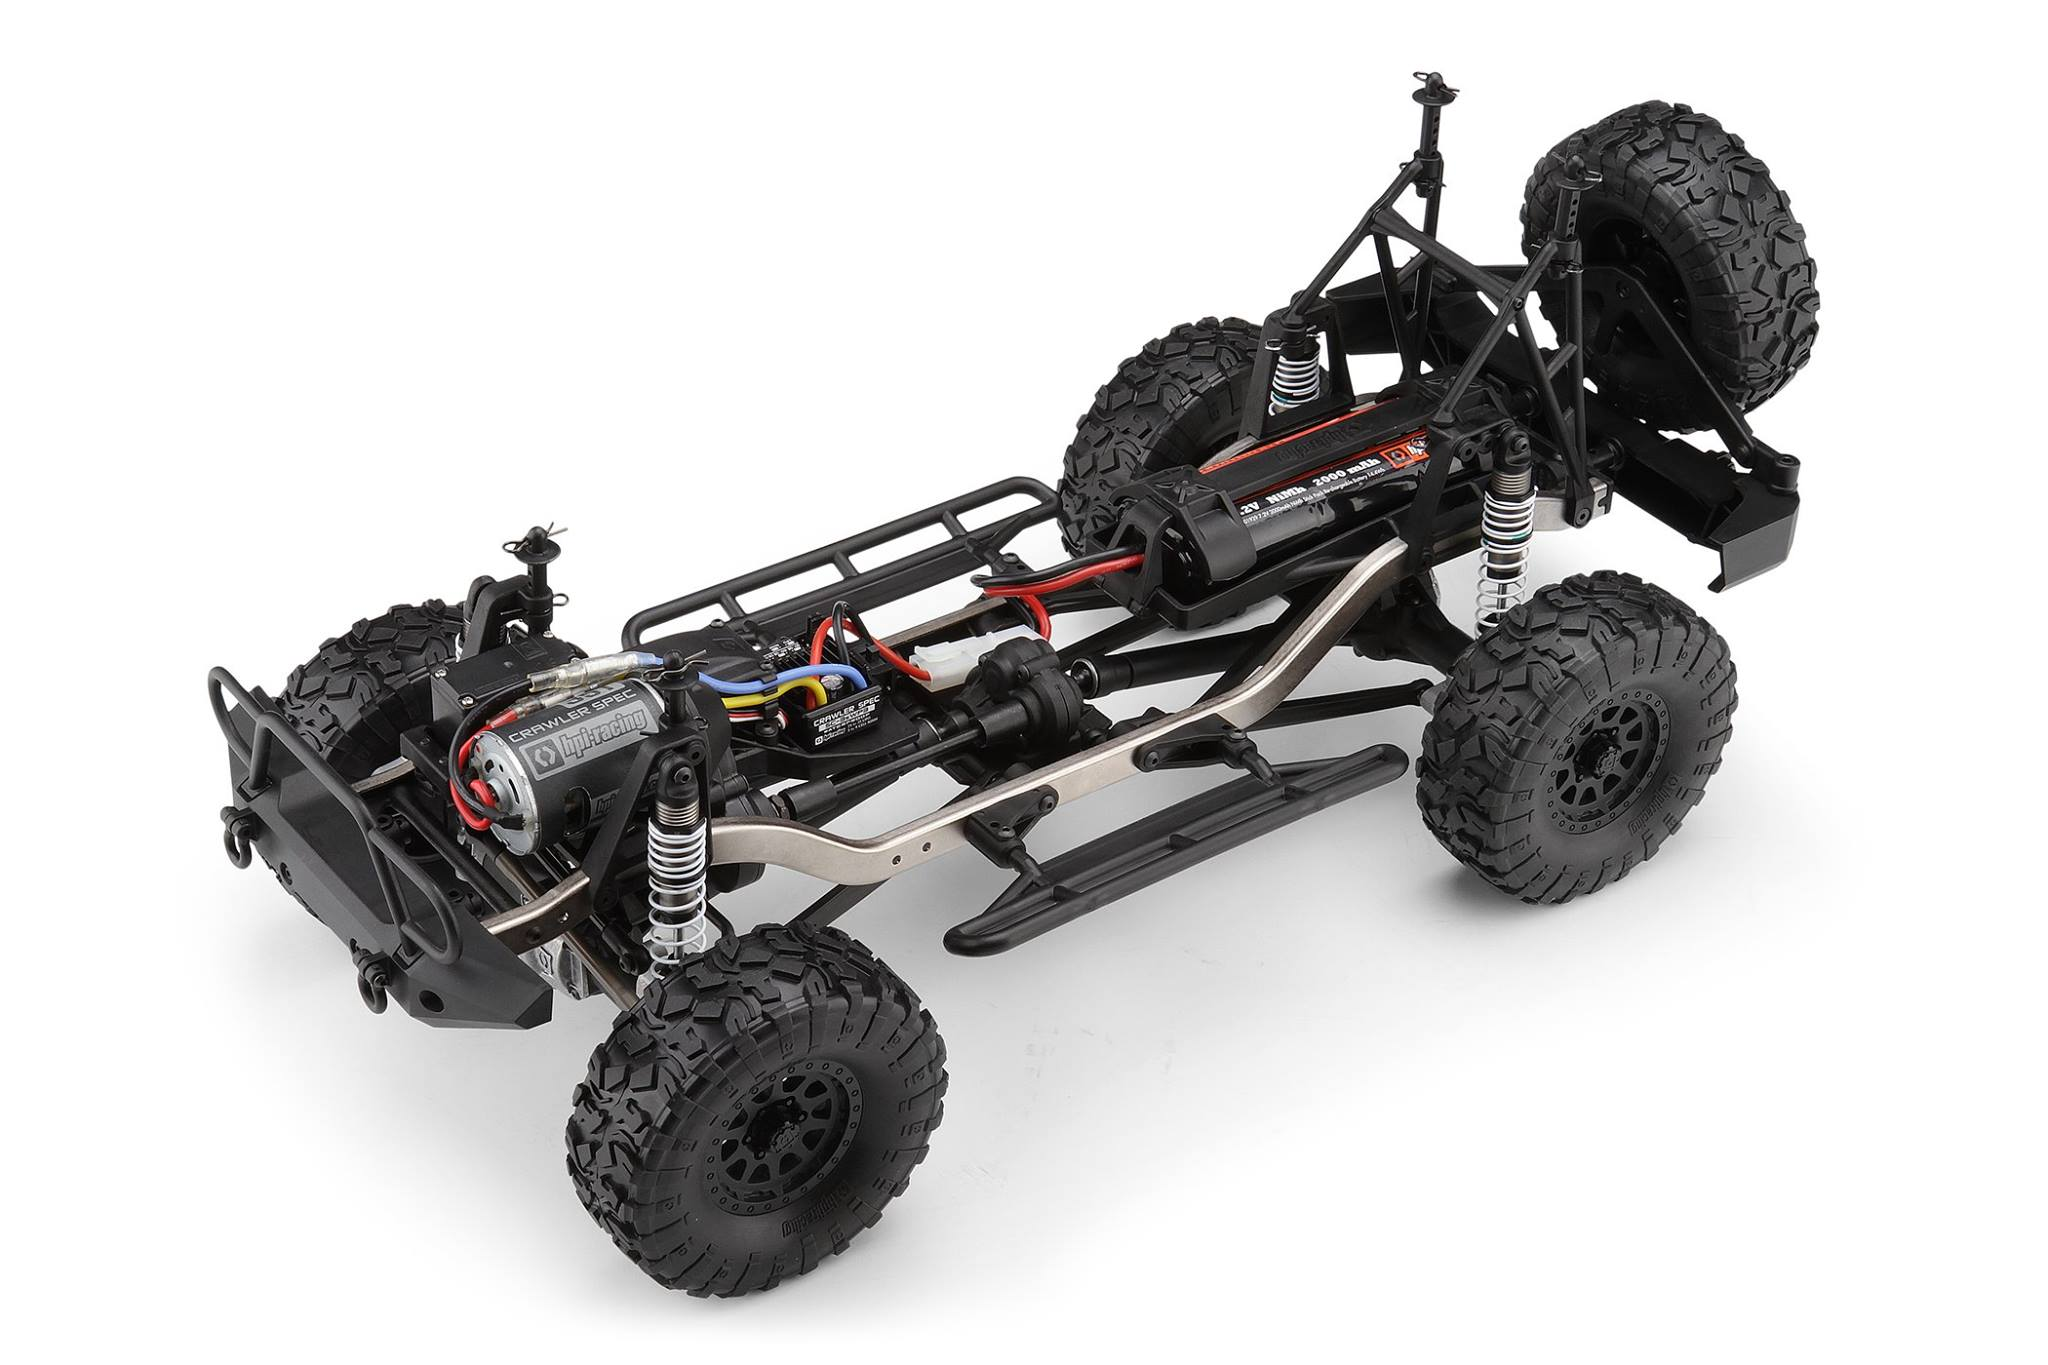 """HPI's Venture Gives a Look """"Under the Hood"""" of their FJ Cruiser"""